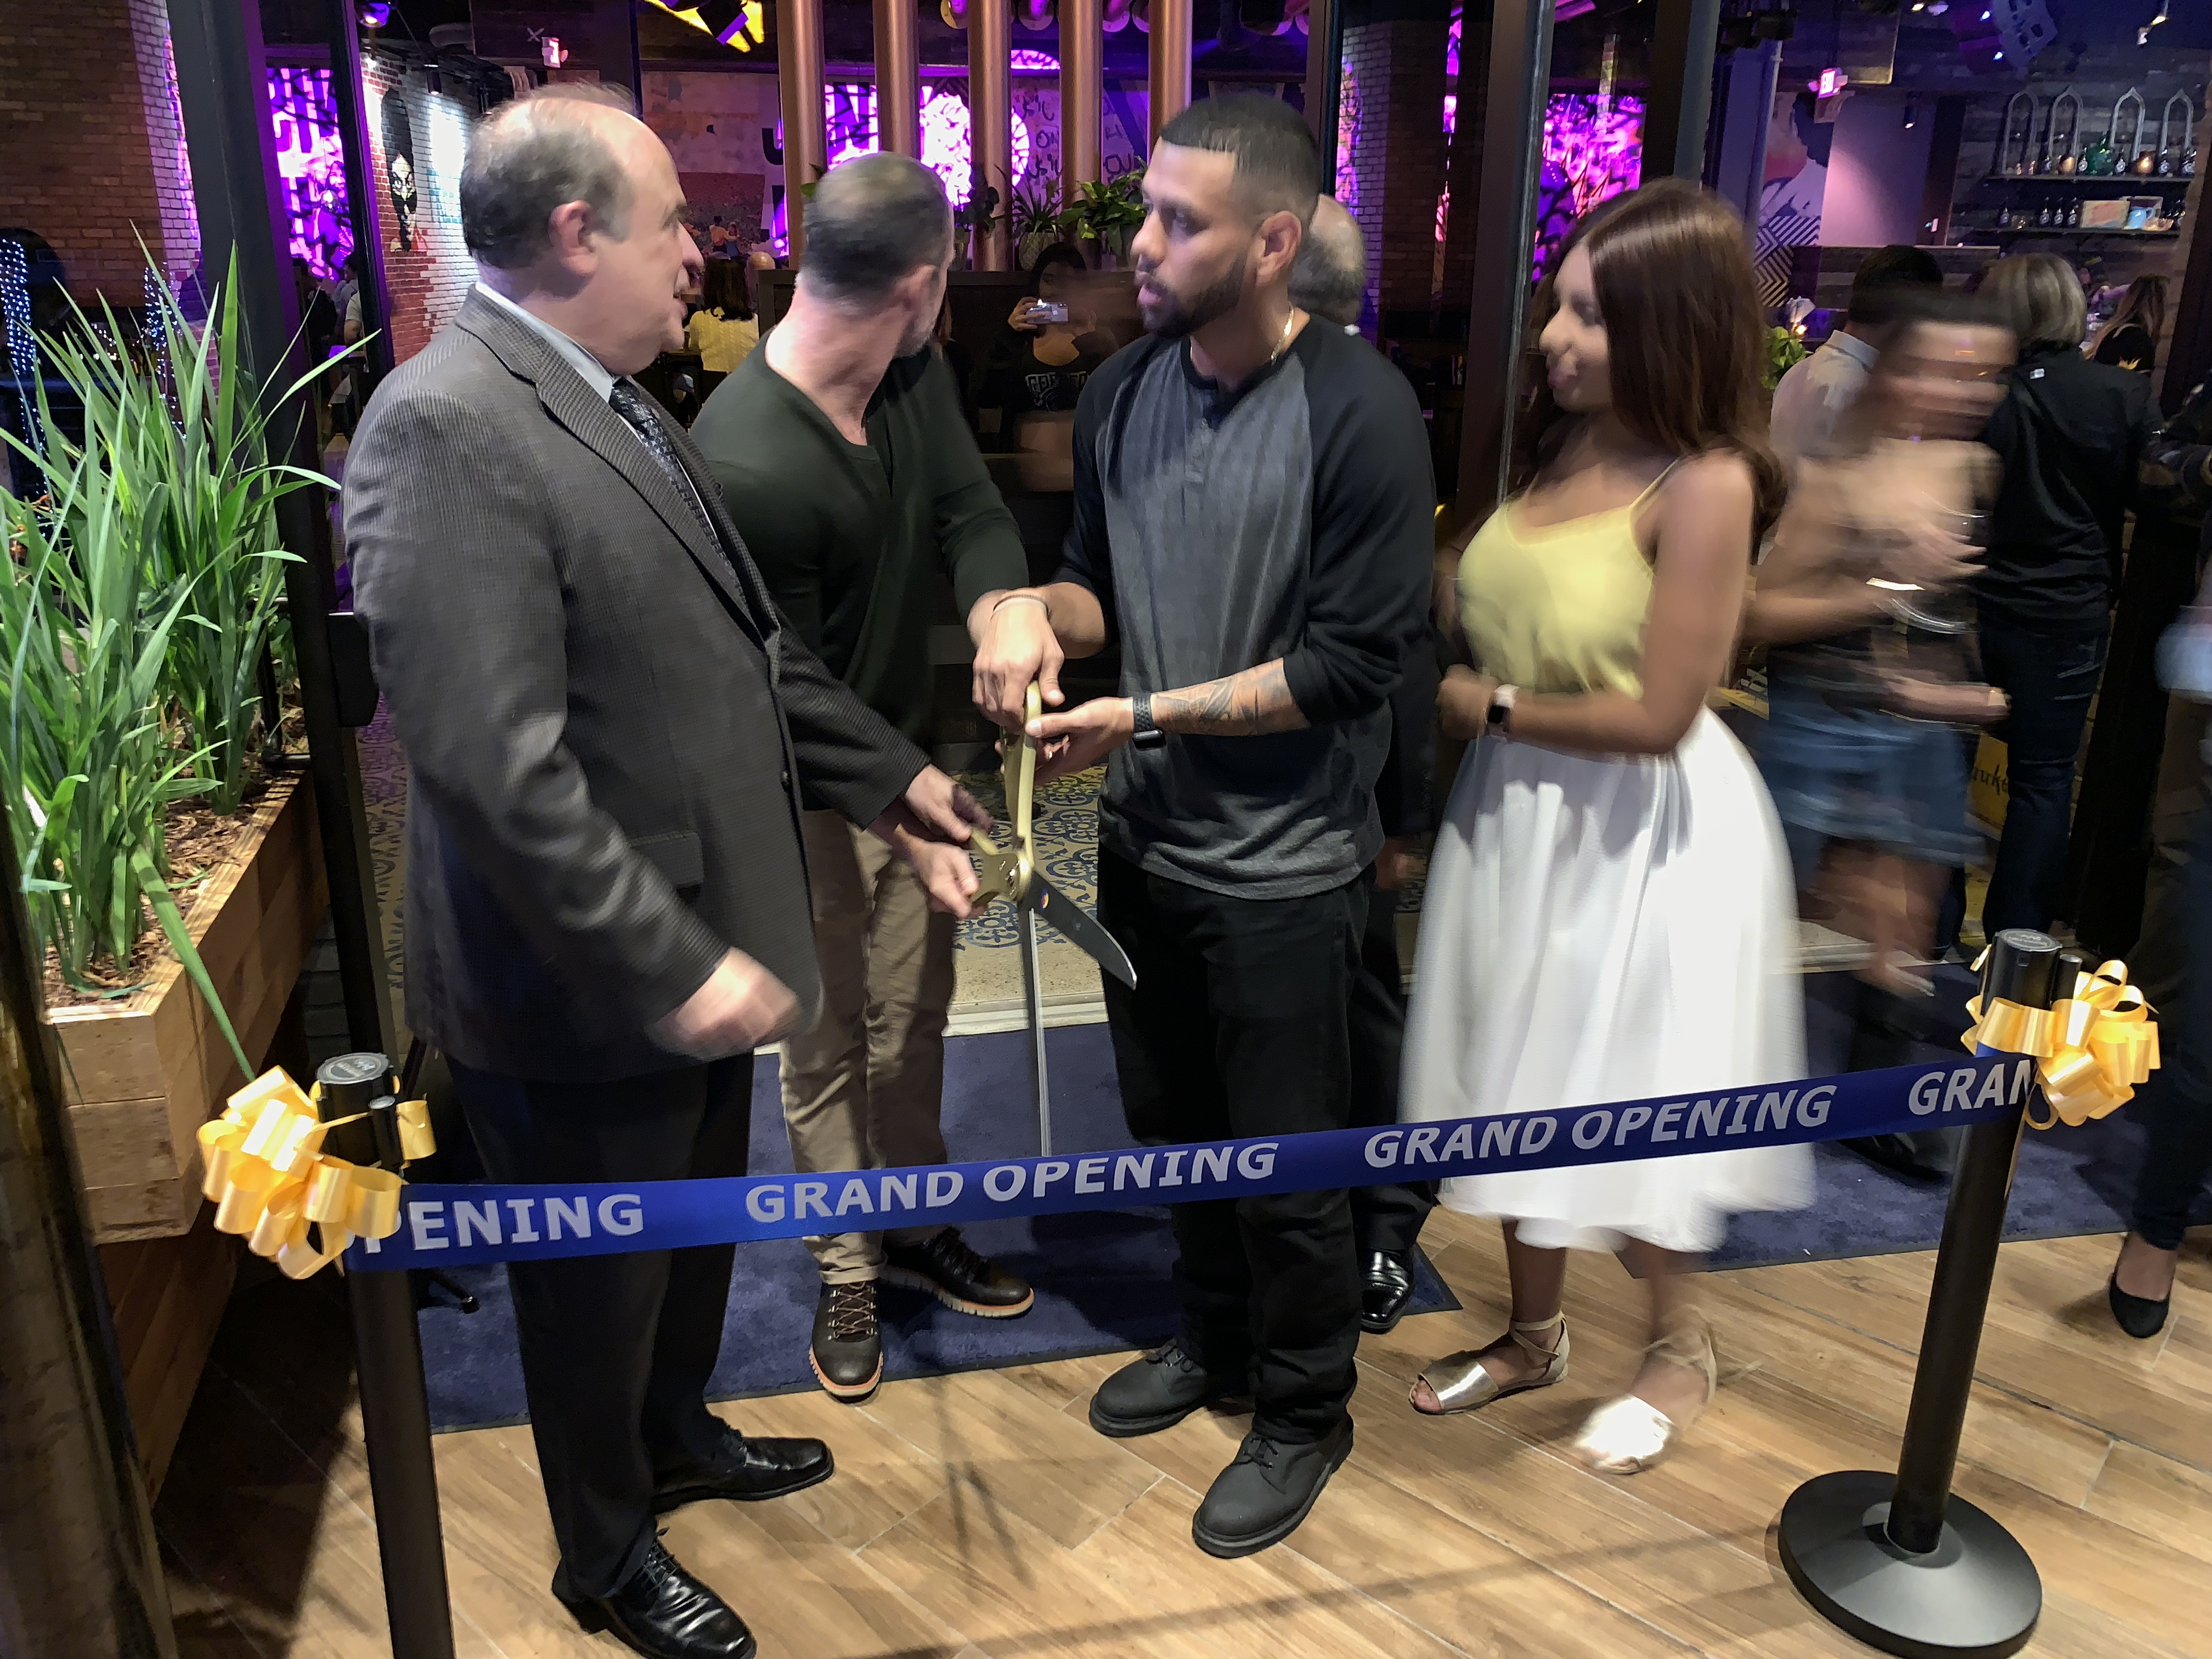 Ribbon cutting with Mayor at Copper Blues Improv hosted by the Doral Chamber of Commerce.